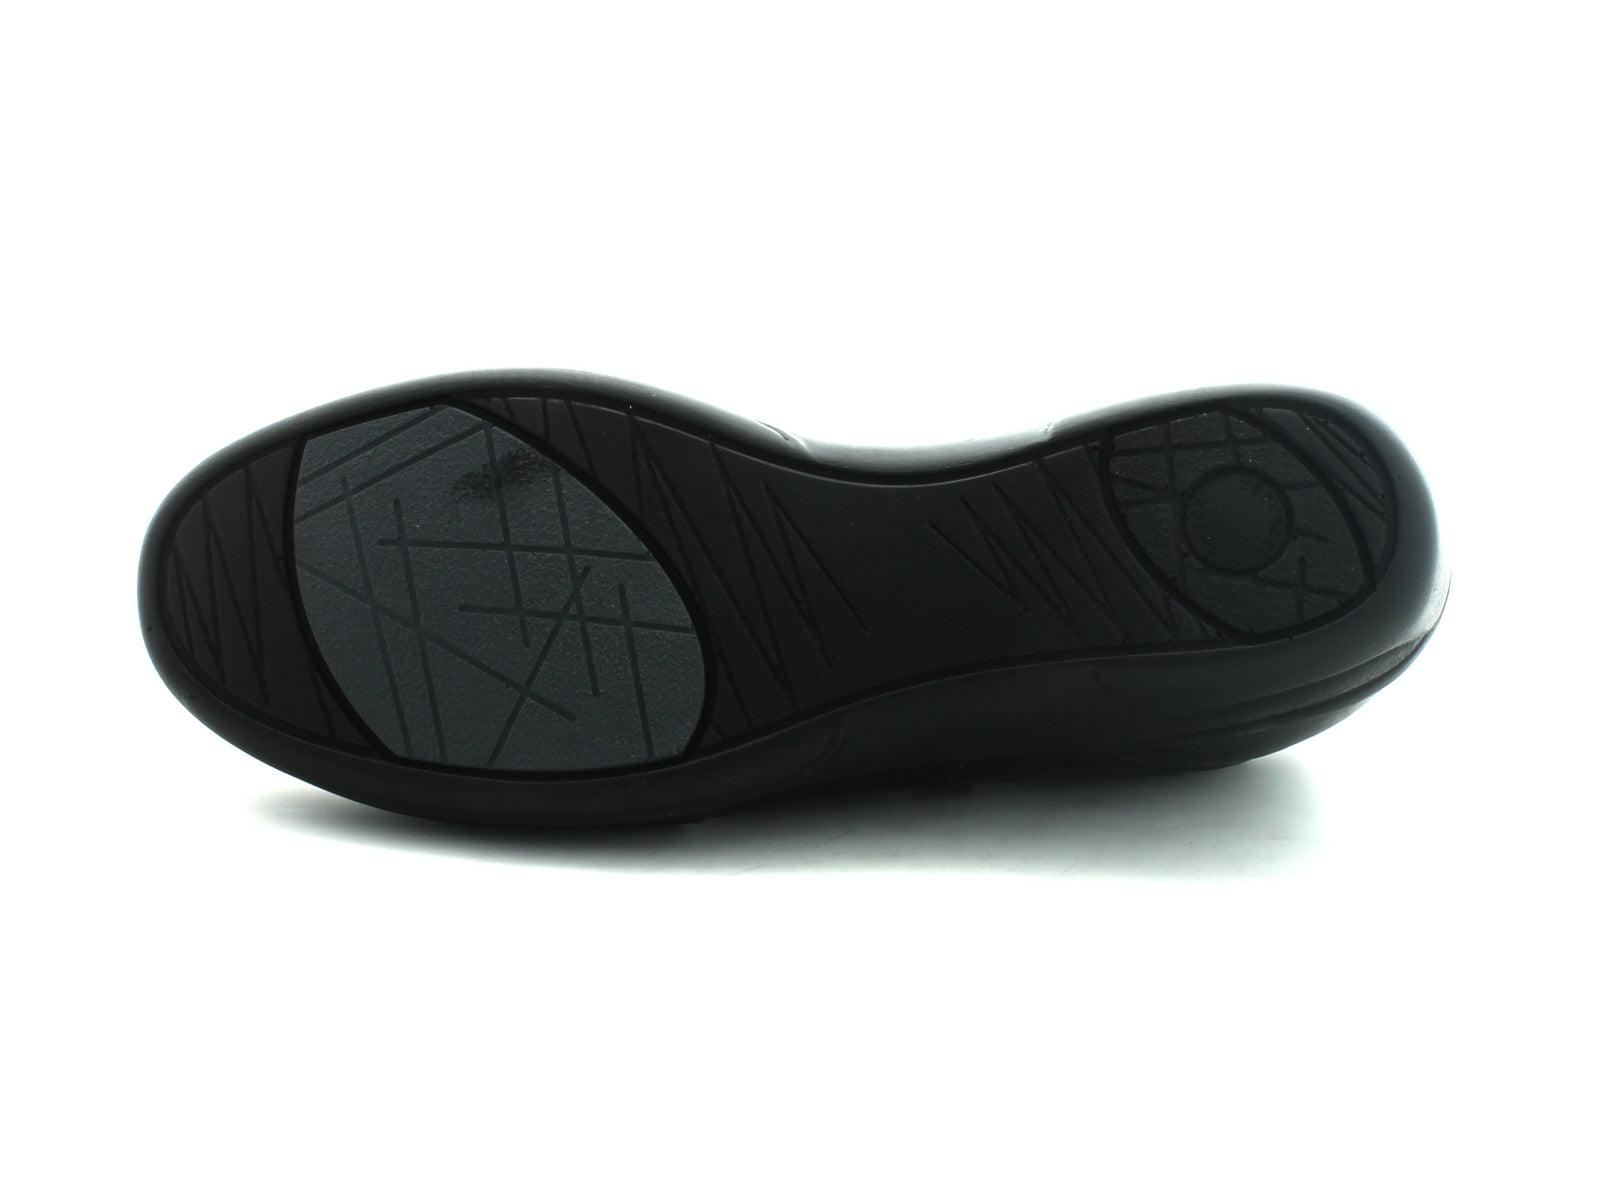 DB Easy B Holborn in Black Leather sole view